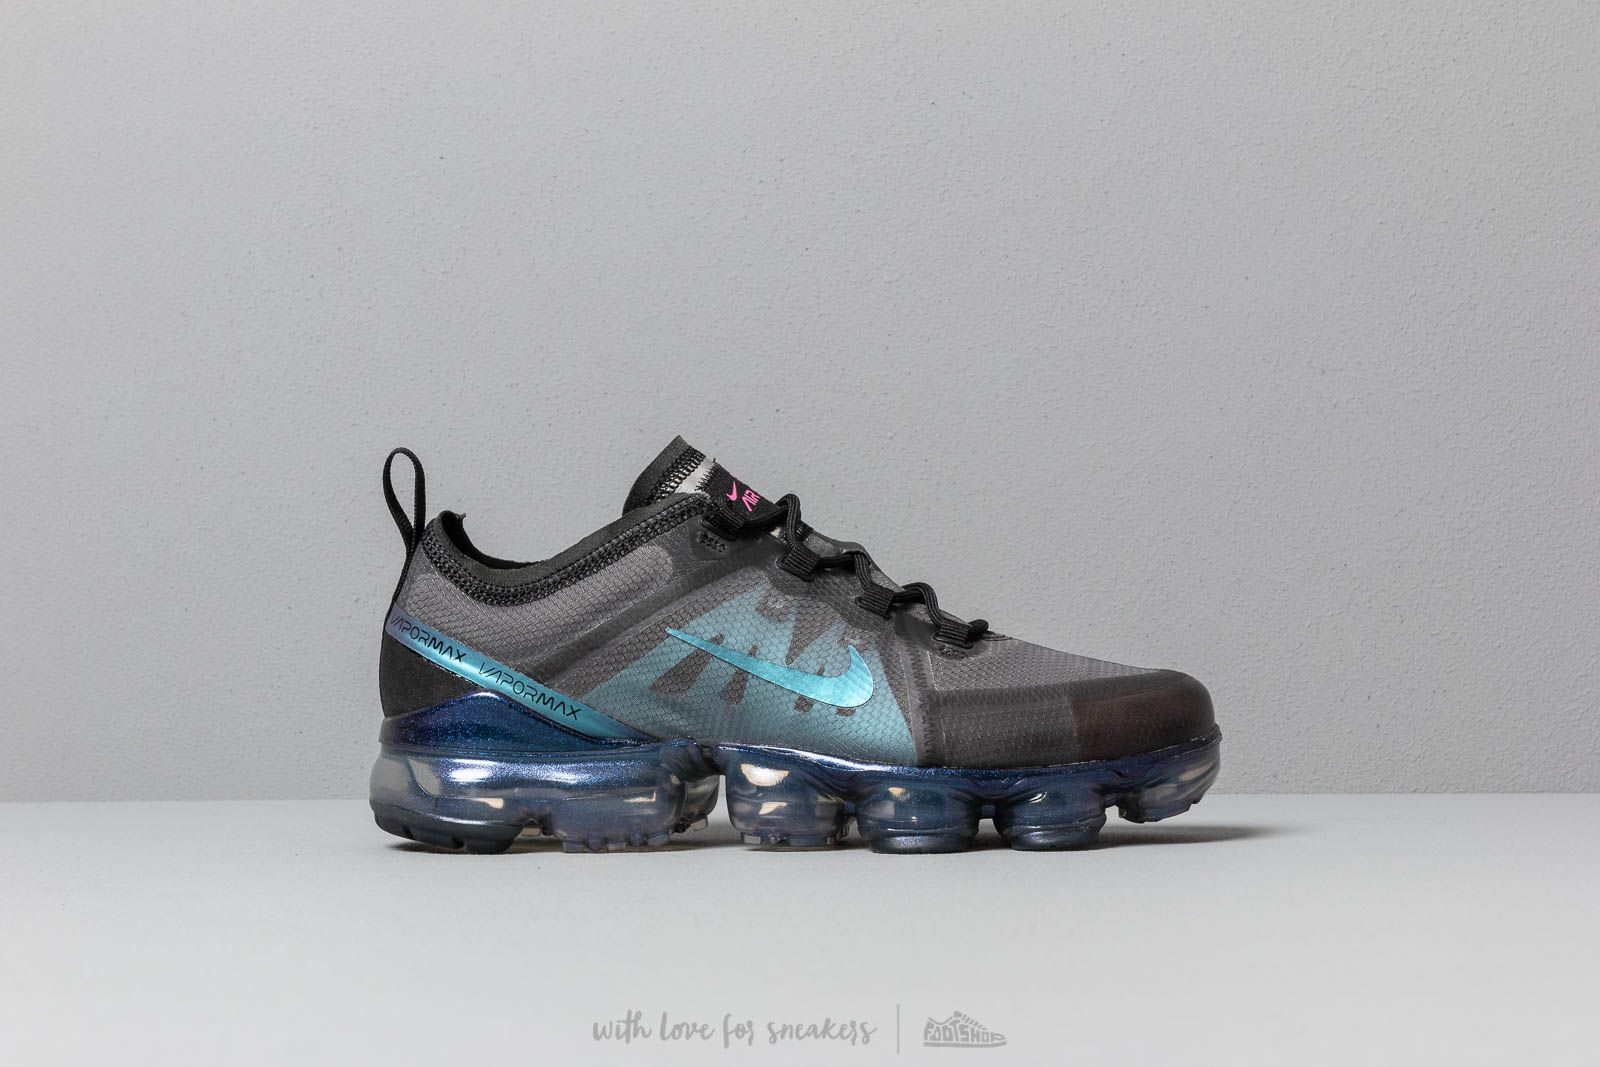 Nike Air Vapormax 2019 (GS) Black/ Laser Fuchsia-Anthracite at a great